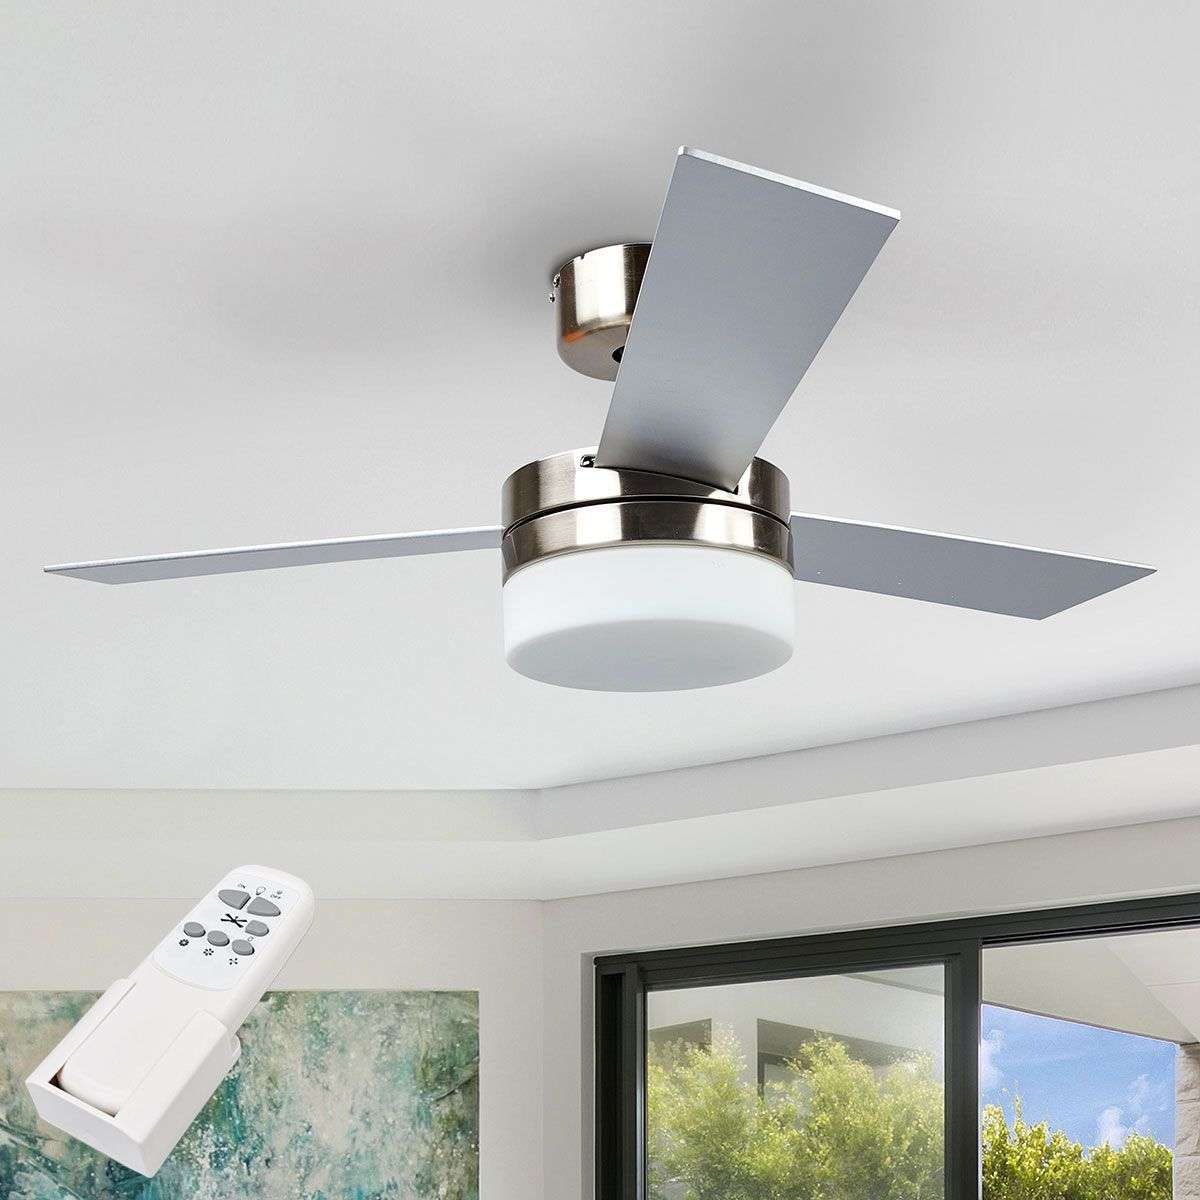 Alvin Three Blade Ceiling Fan With Light 4018105 314